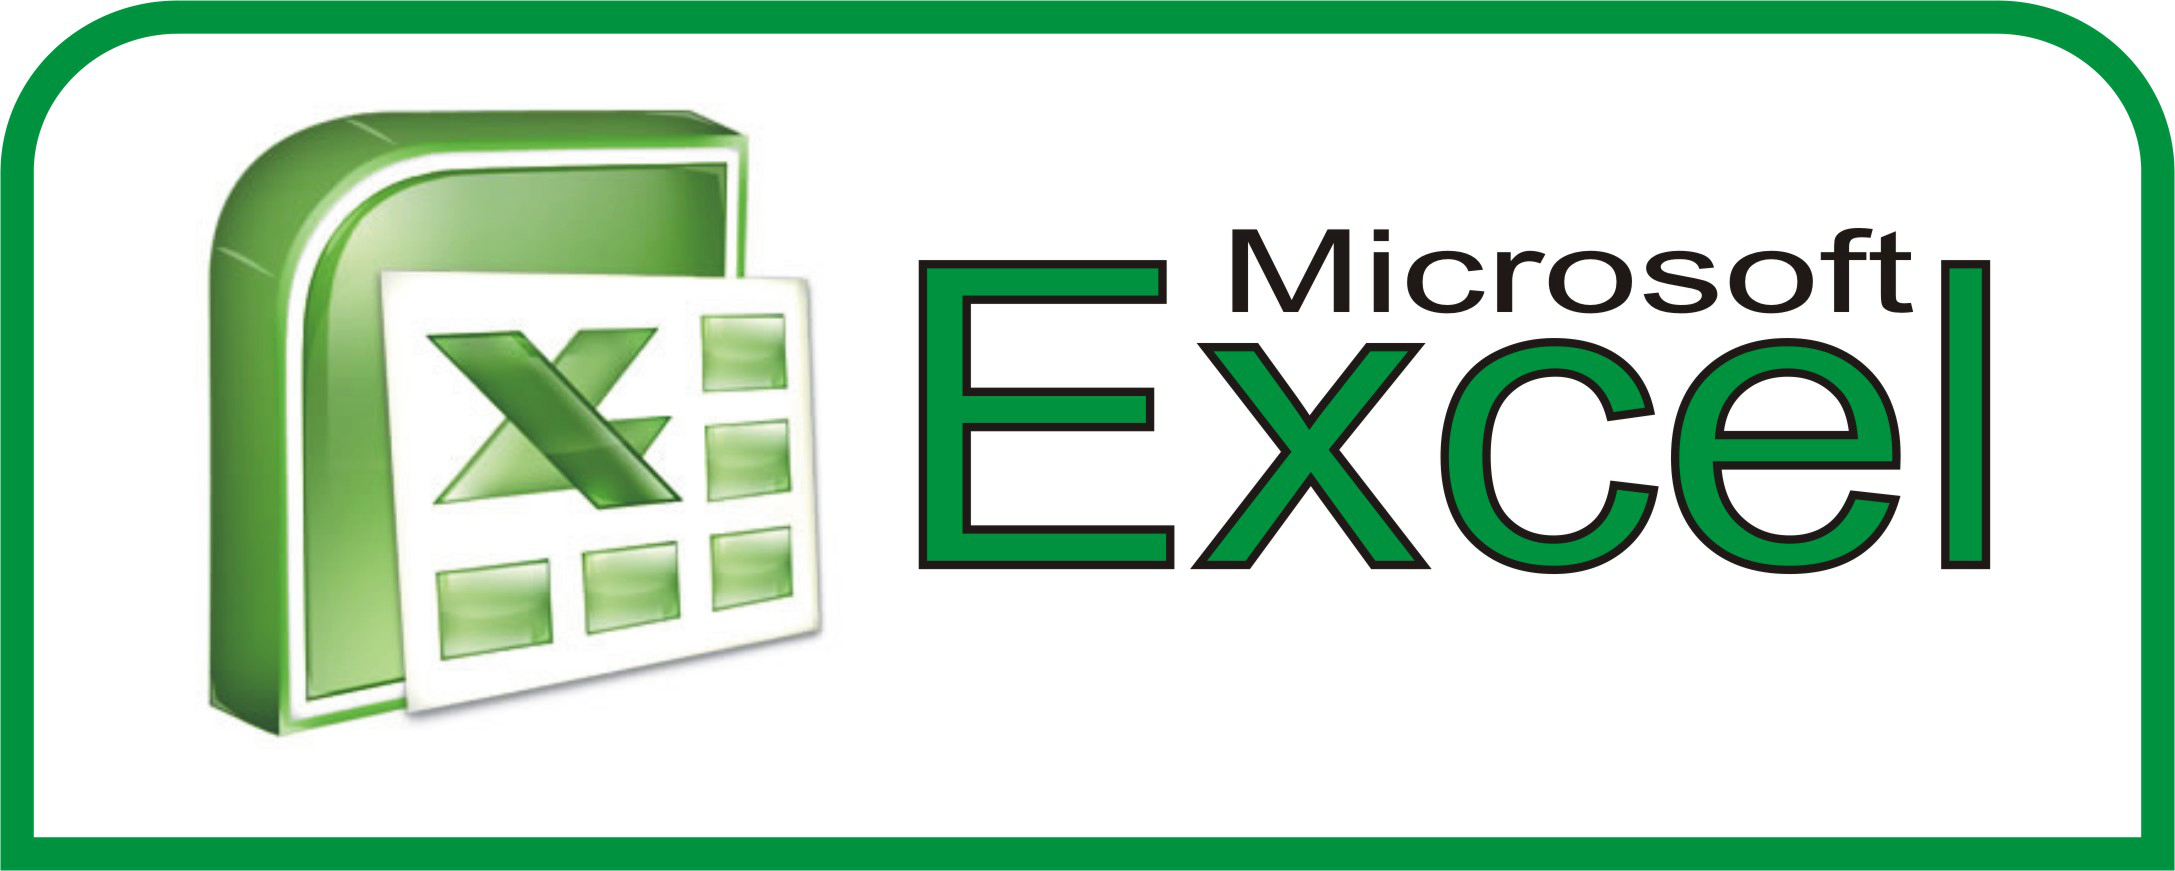 Ediblewildsus  Outstanding  Excel Shortcuts You Probably Didnt Know About  Techdissected With Magnificent How To Open Pdf In Excel Besides Event Planning Template Excel Furthermore  Calendar Excel With Delightful Excel Vba Find Replace Also Last Row In Excel In Addition Excel  Graph And Excel Function To Subtract As Well As Pdf To Excel Convertor Additionally How To Make Macro In Excel From Techdissectedcom With Ediblewildsus  Magnificent  Excel Shortcuts You Probably Didnt Know About  Techdissected With Delightful How To Open Pdf In Excel Besides Event Planning Template Excel Furthermore  Calendar Excel And Outstanding Excel Vba Find Replace Also Last Row In Excel In Addition Excel  Graph From Techdissectedcom